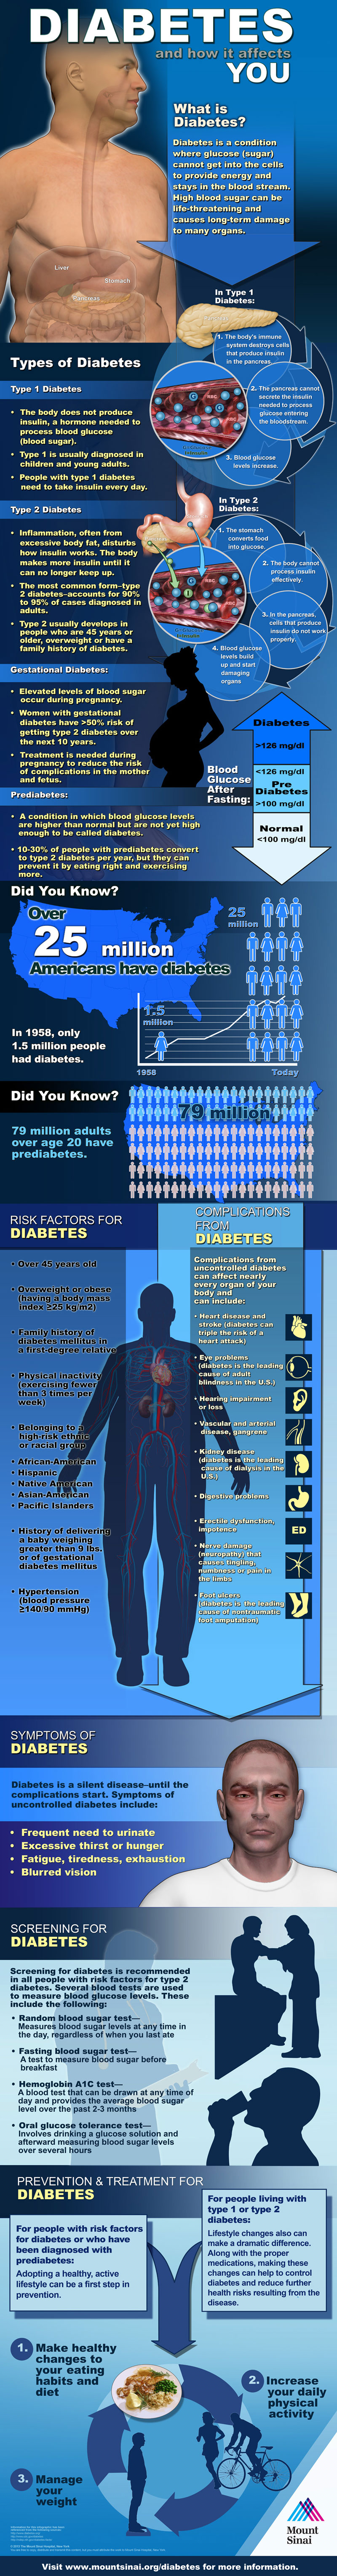 Diabetes-And-How-It-Affects-You-Infographic